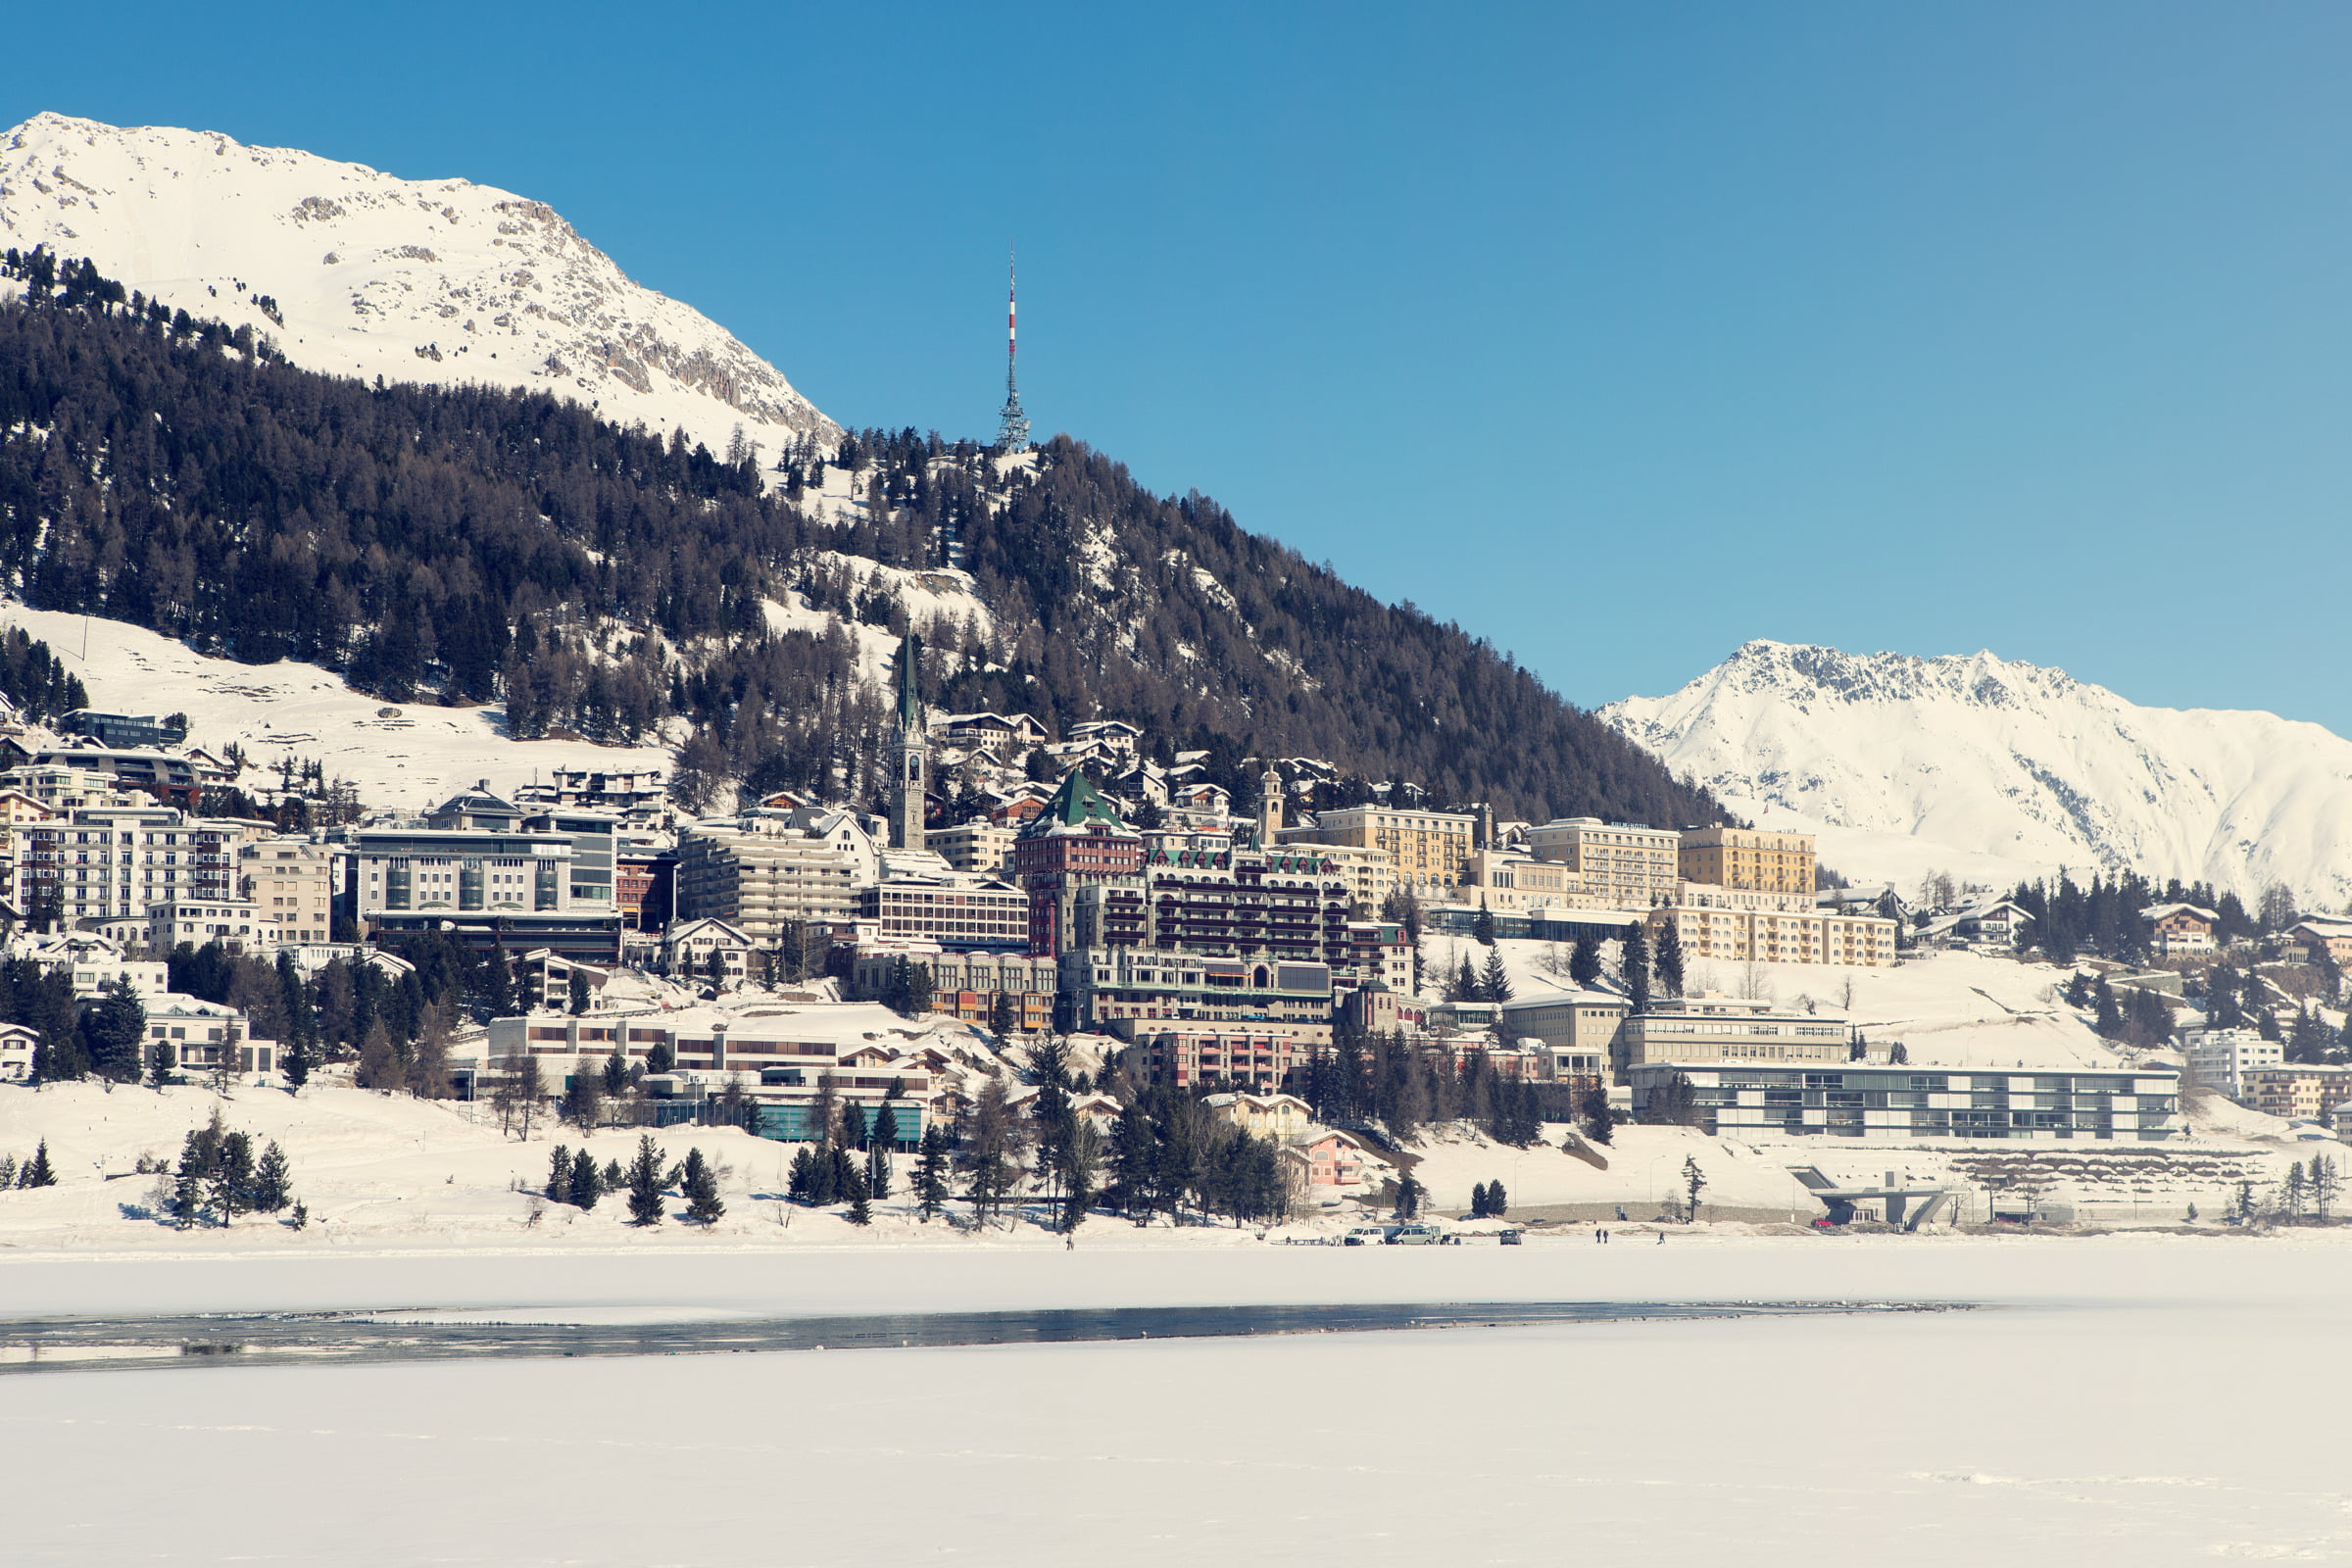 COME TO ST. MORITZ AND CELEBRATE LIFE WITH US!